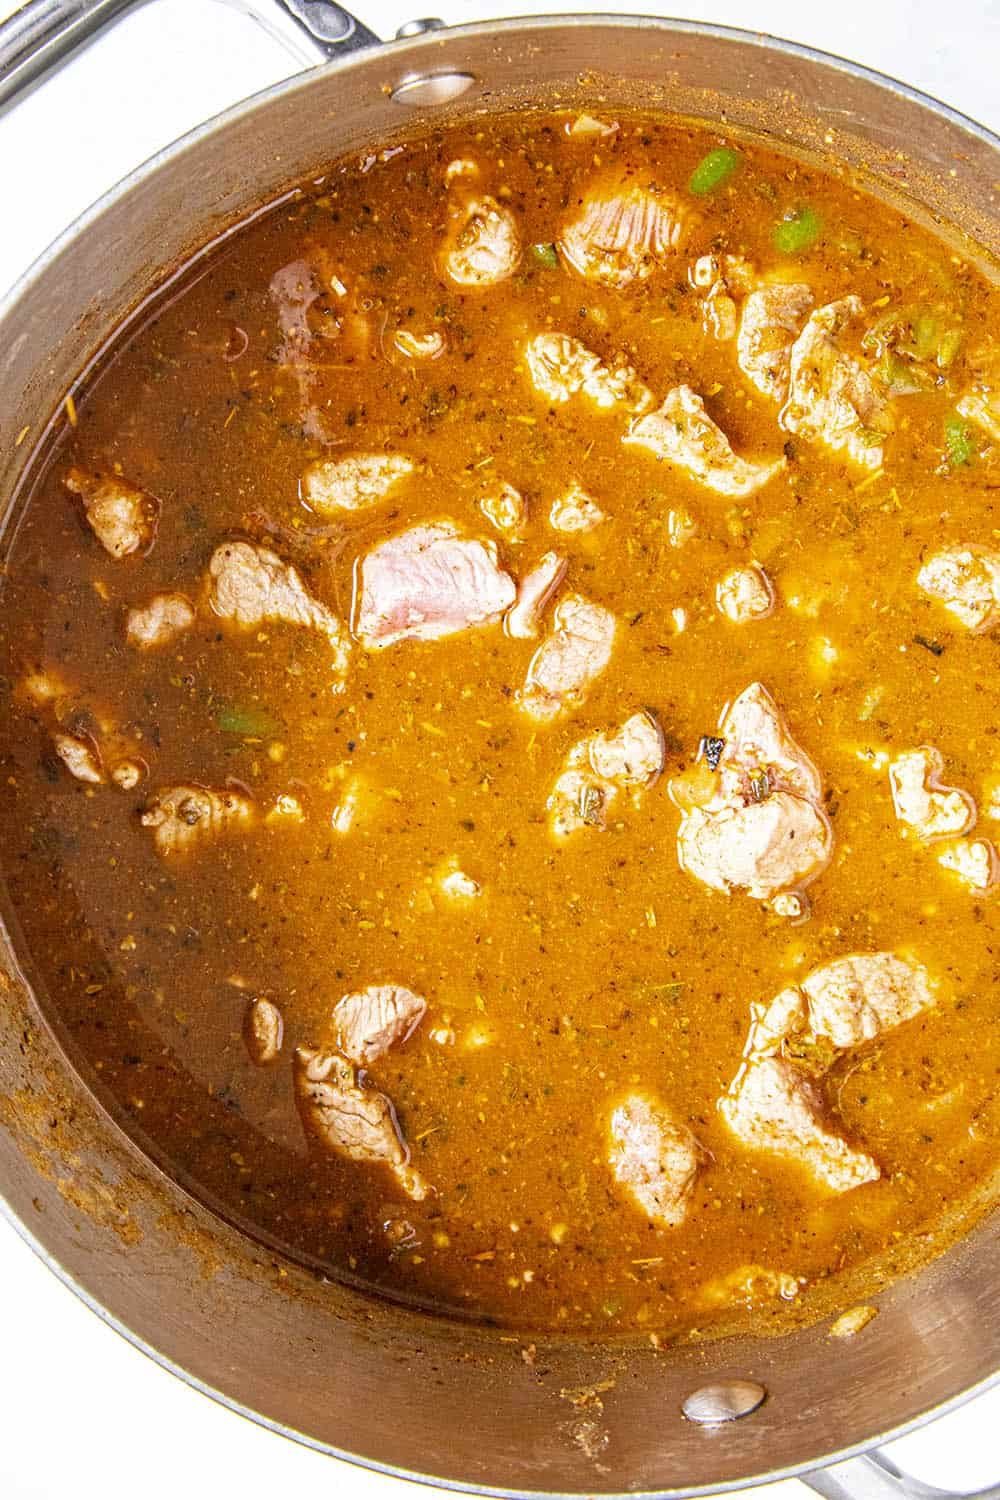 Carne Adovada simmering in a pot